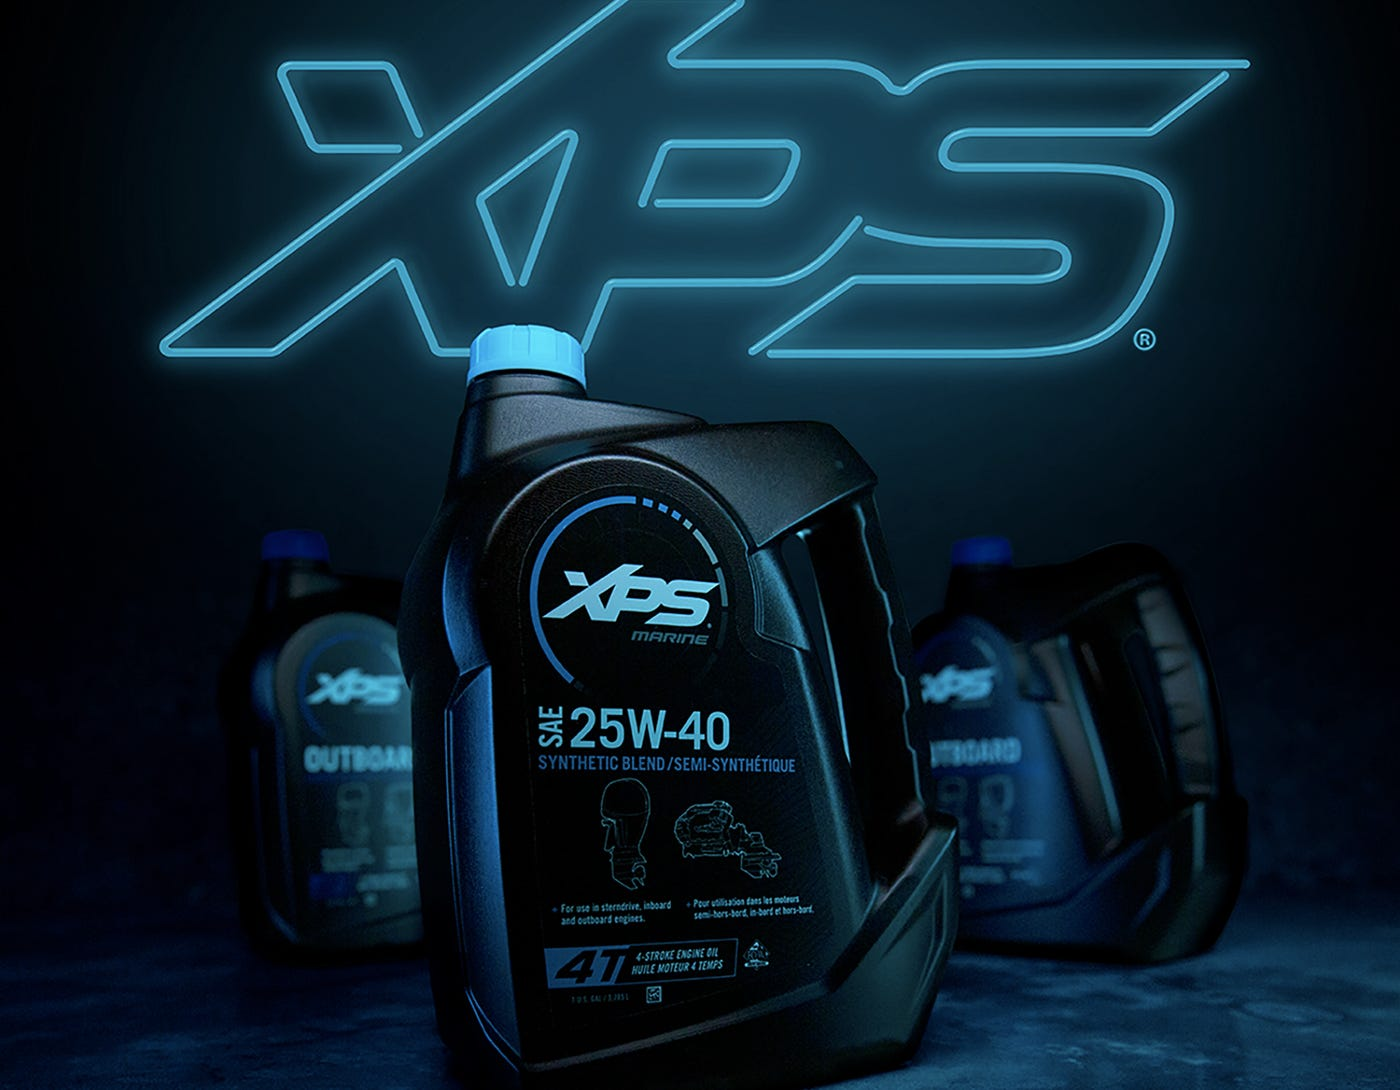 XPS Engine oils & Lubricants